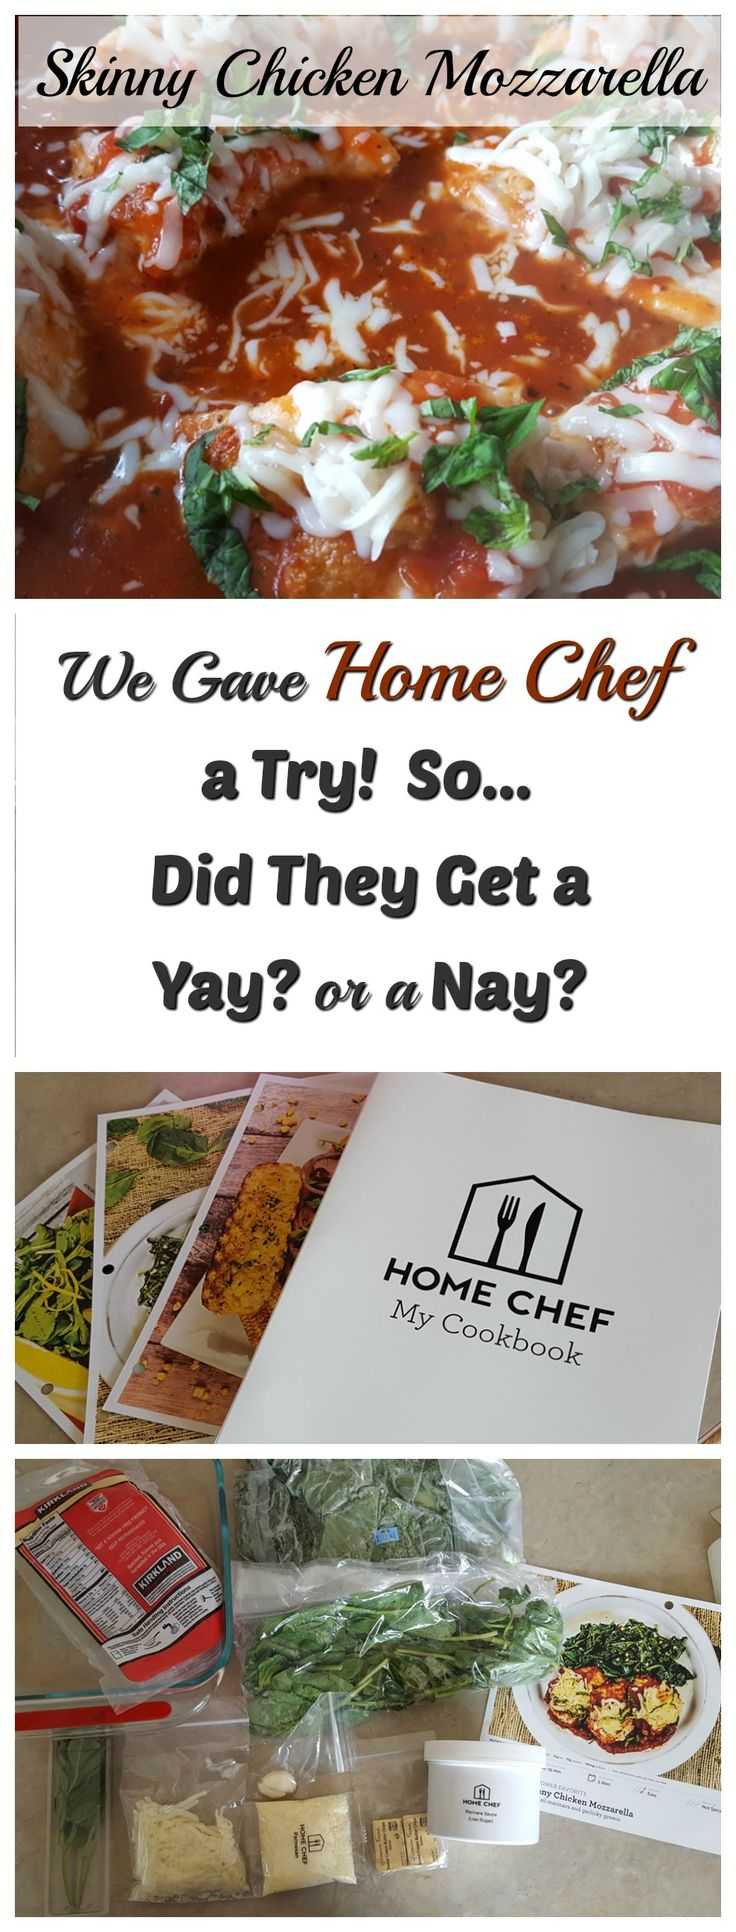 27 best meal planning delivery images on pinterest meal planning home chef promises fresh ingredients and simple recipes delivered to your door that allow you to forumfinder Choice Image